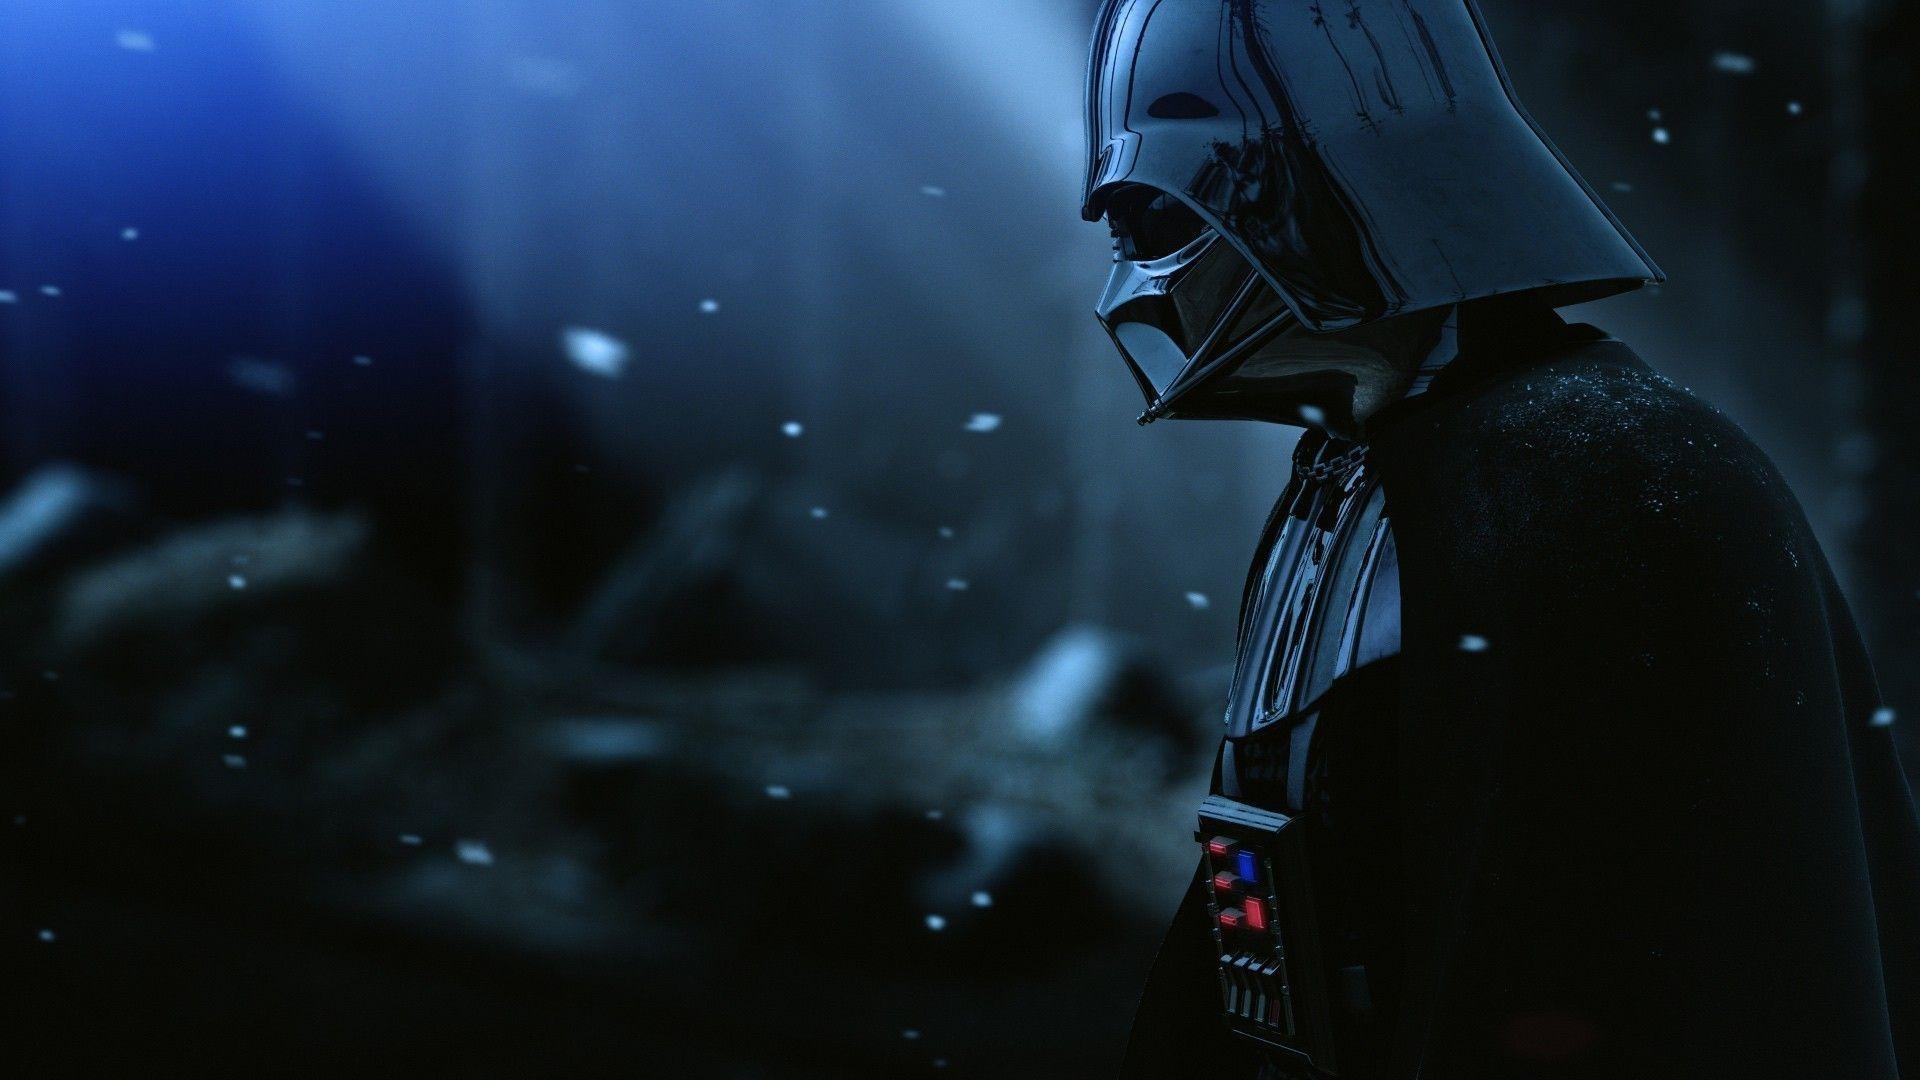 10 New Star Wars Hd Wallpaper FULL HD 1920×1080 For PC Desktop